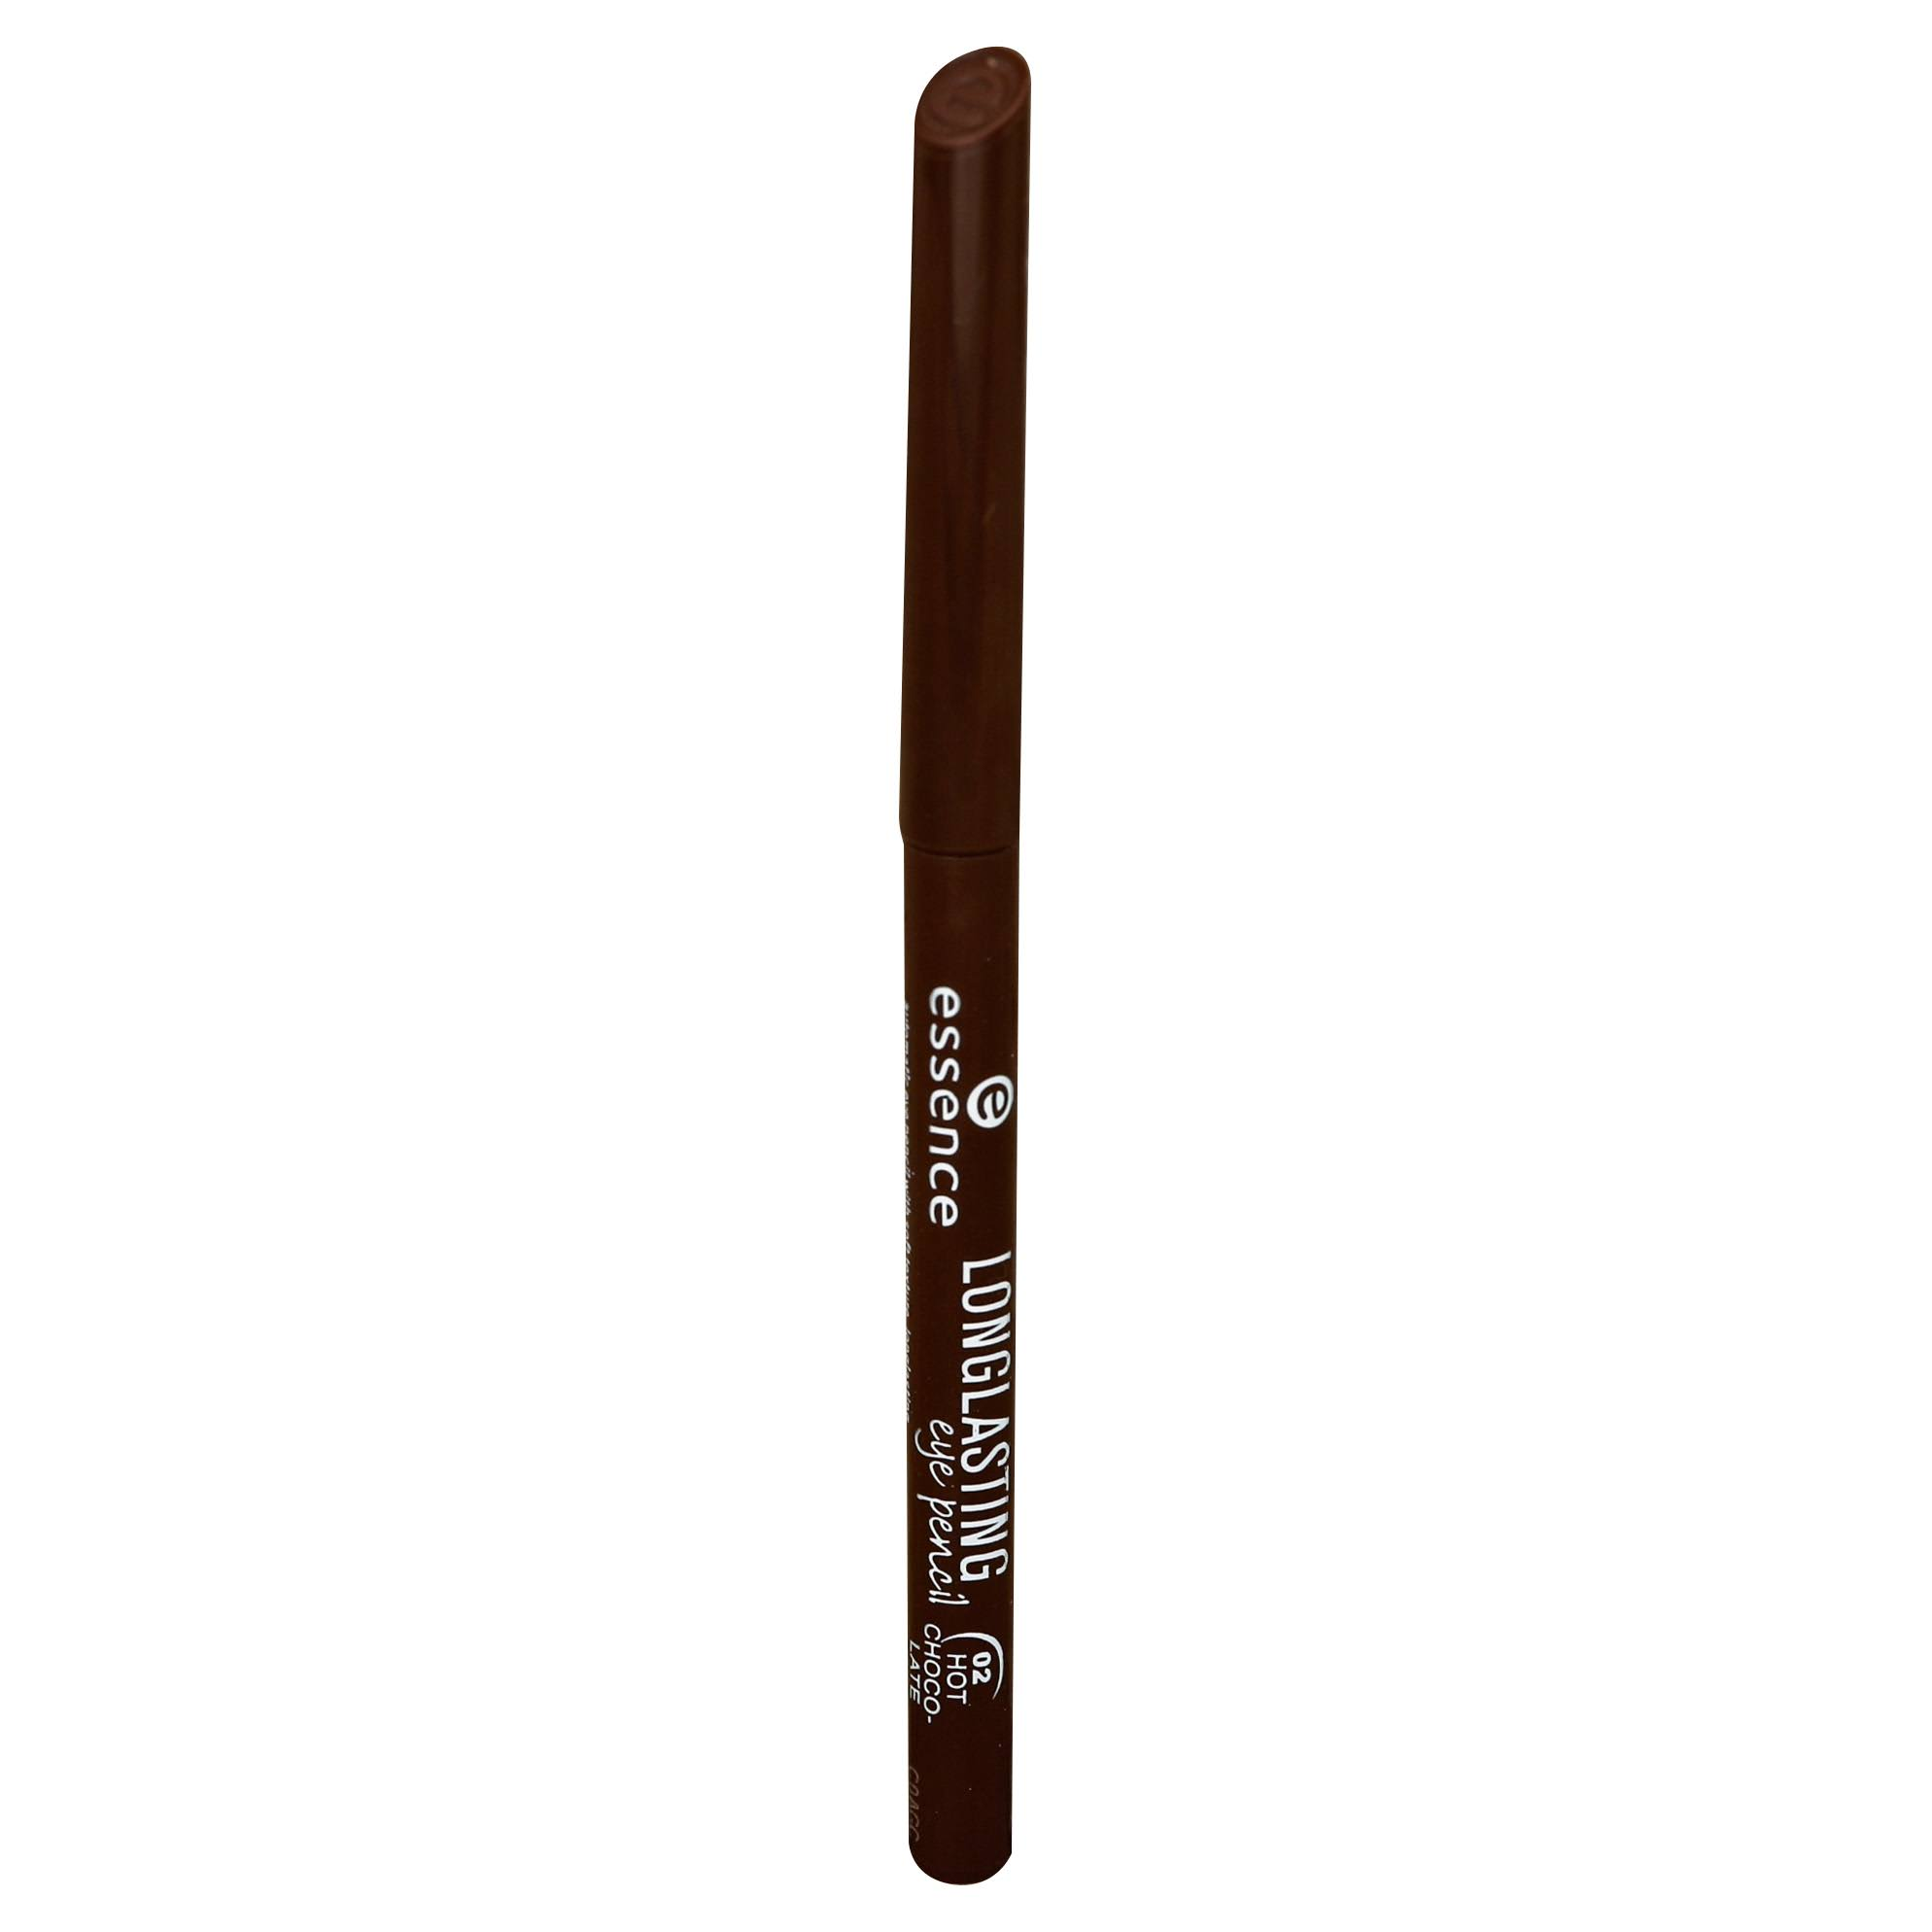 Essence Long-Lasting Eye Pencil - 02 Hot Chocolate